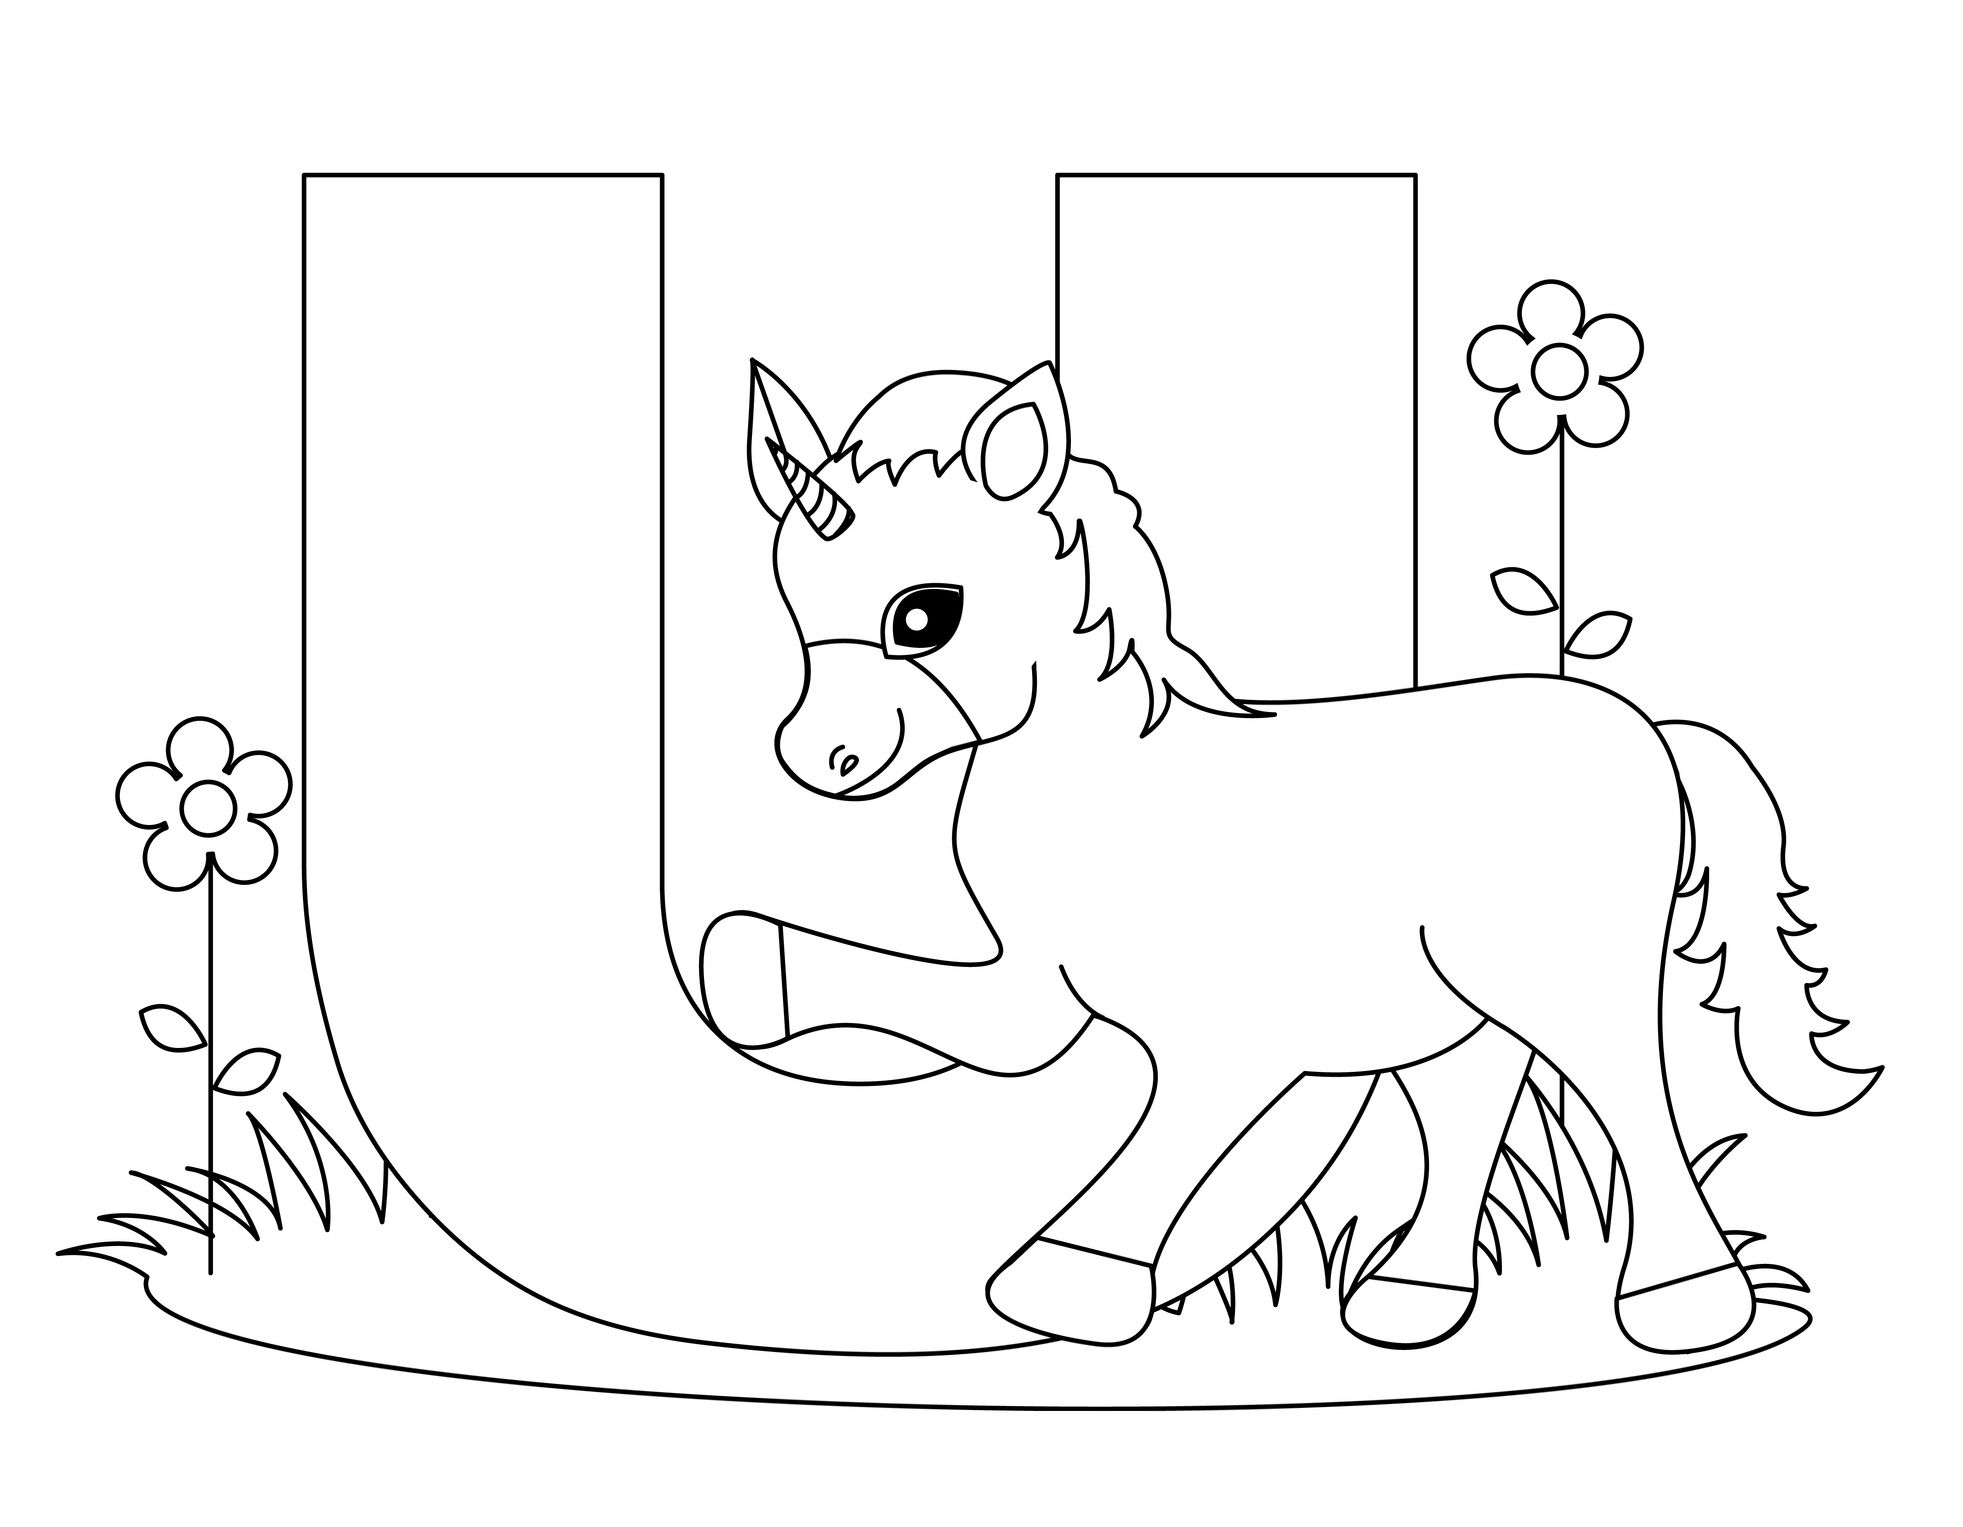 Alphabet pages for coloring book - Printable Animal Alphabet Worksheets Letter U Is For Unicorn Printable Coloring Pages For Kids